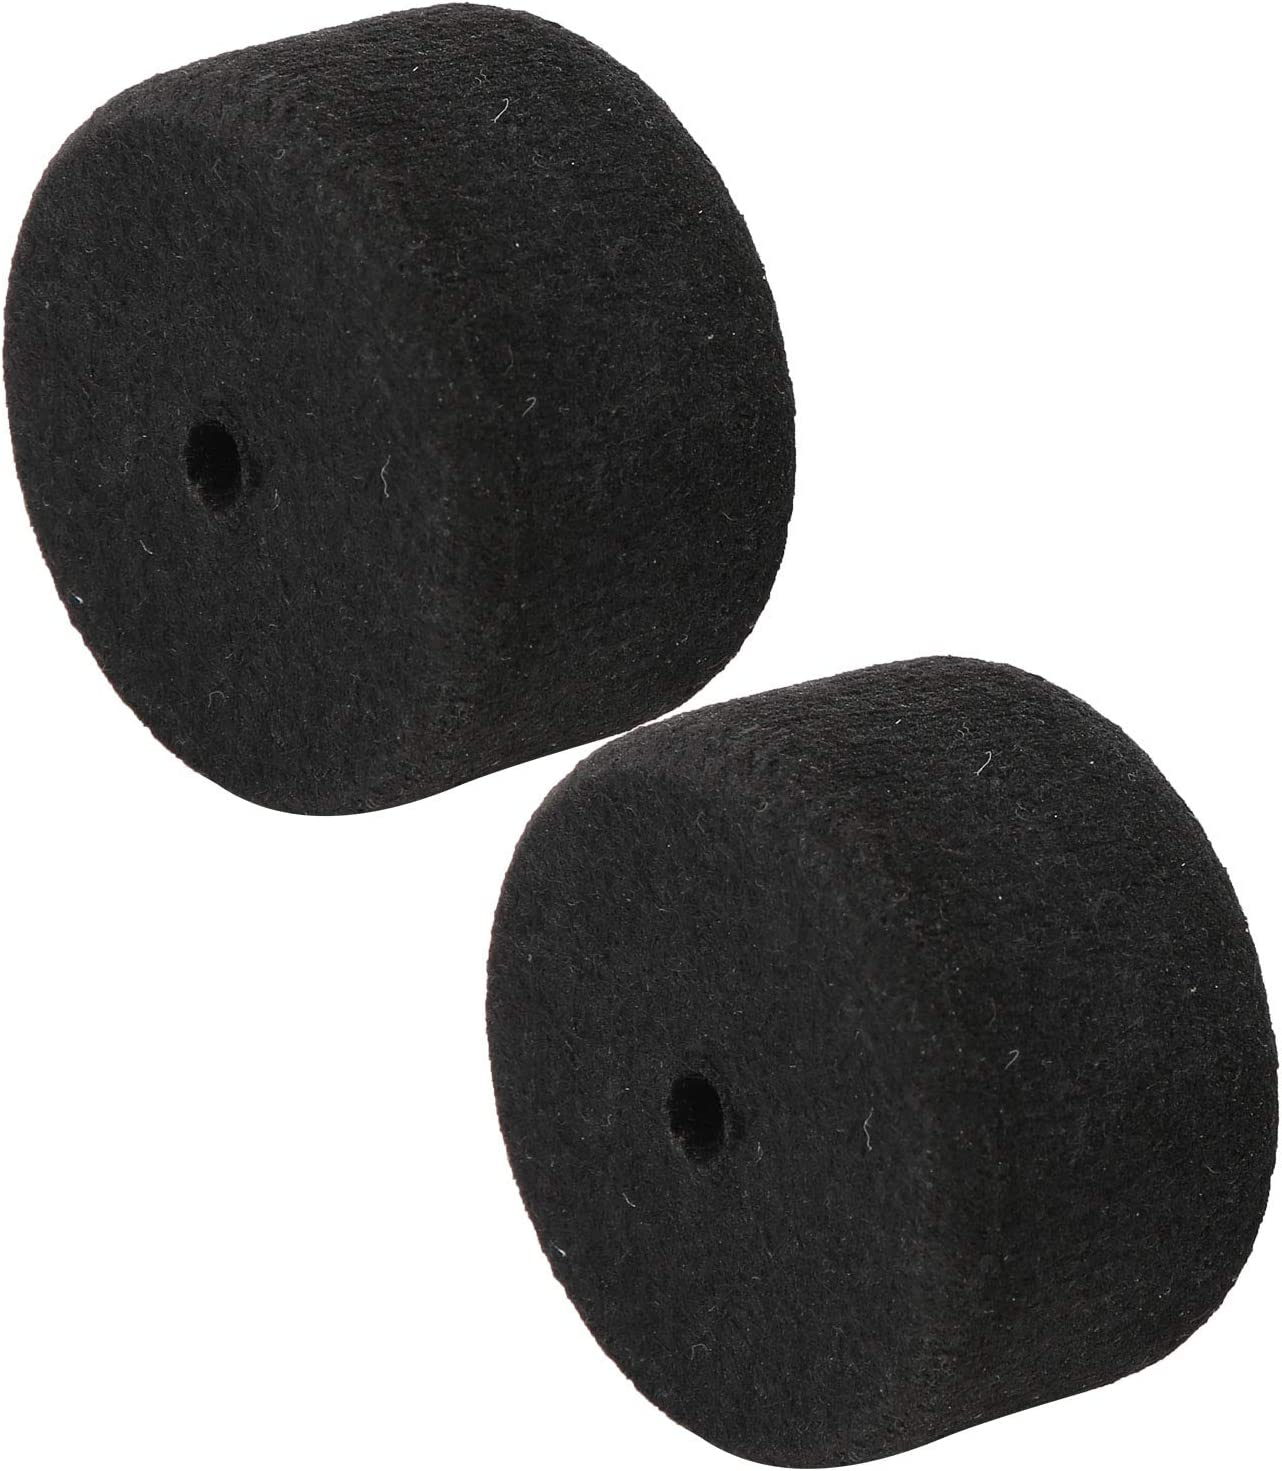 Over item handling Drum Mail order cheap Replacement Practical for Felt Head